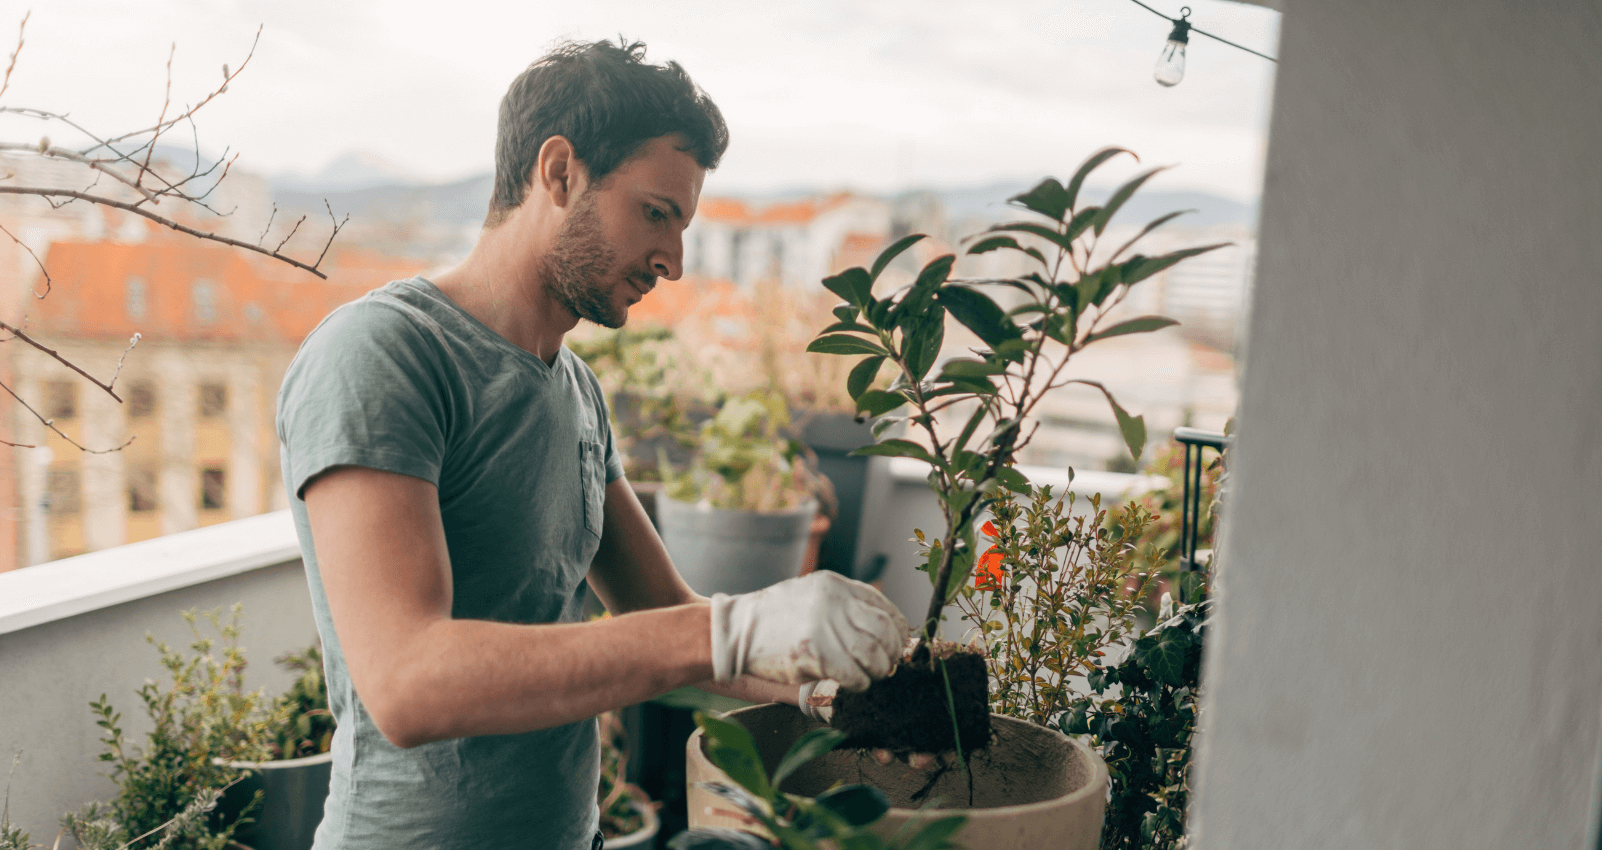 A greener career: why study horticulture courses online?